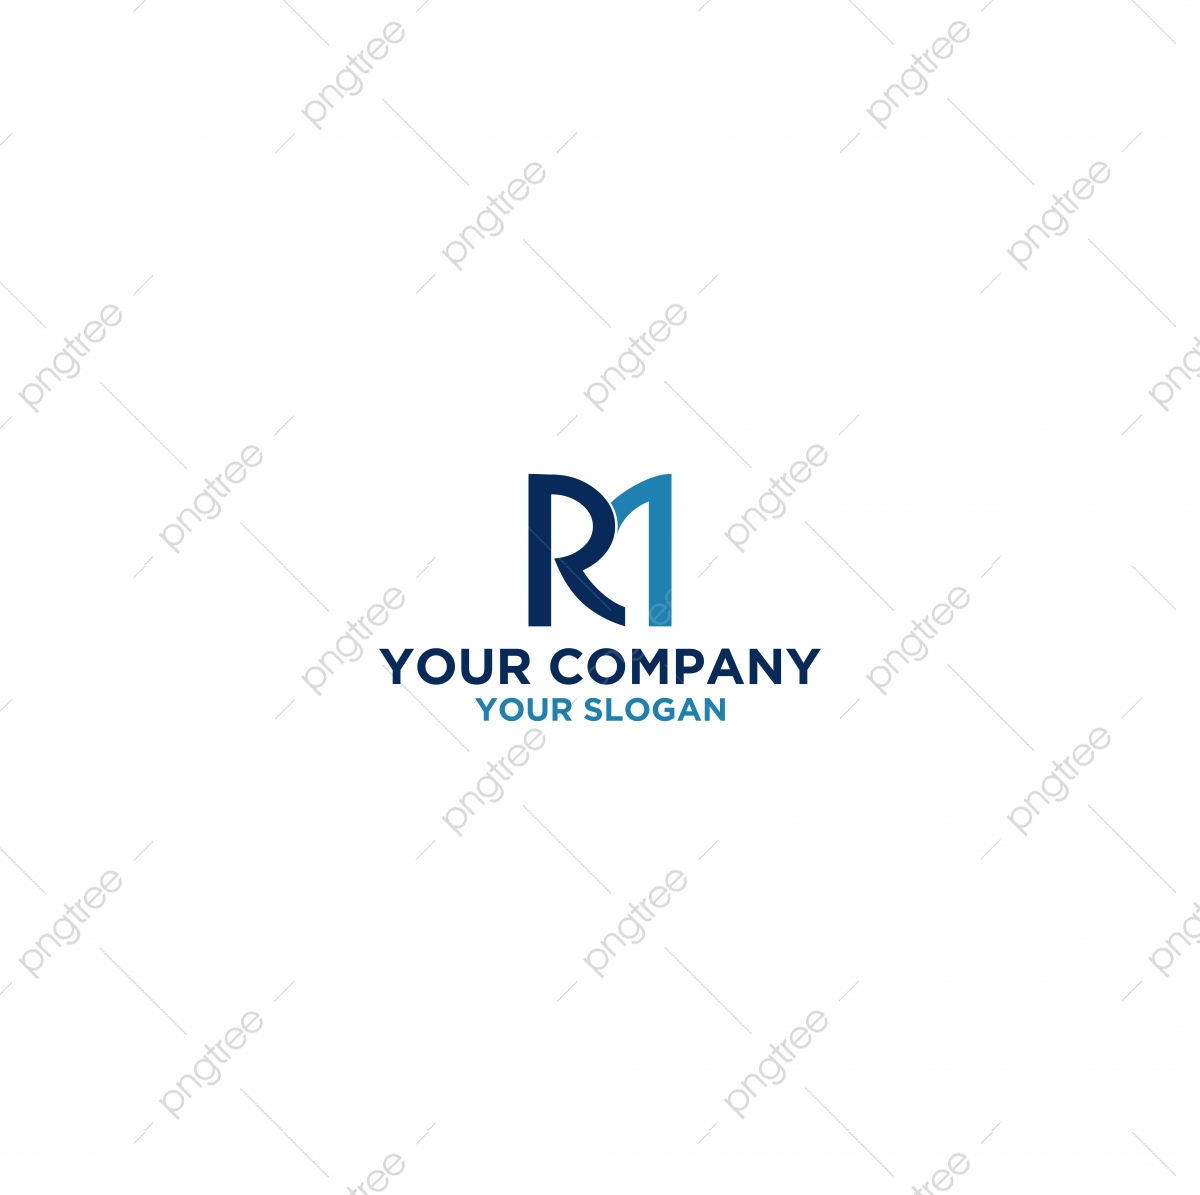 simple rm logo design vector template for free download on pngtree simple rm logo design vector template